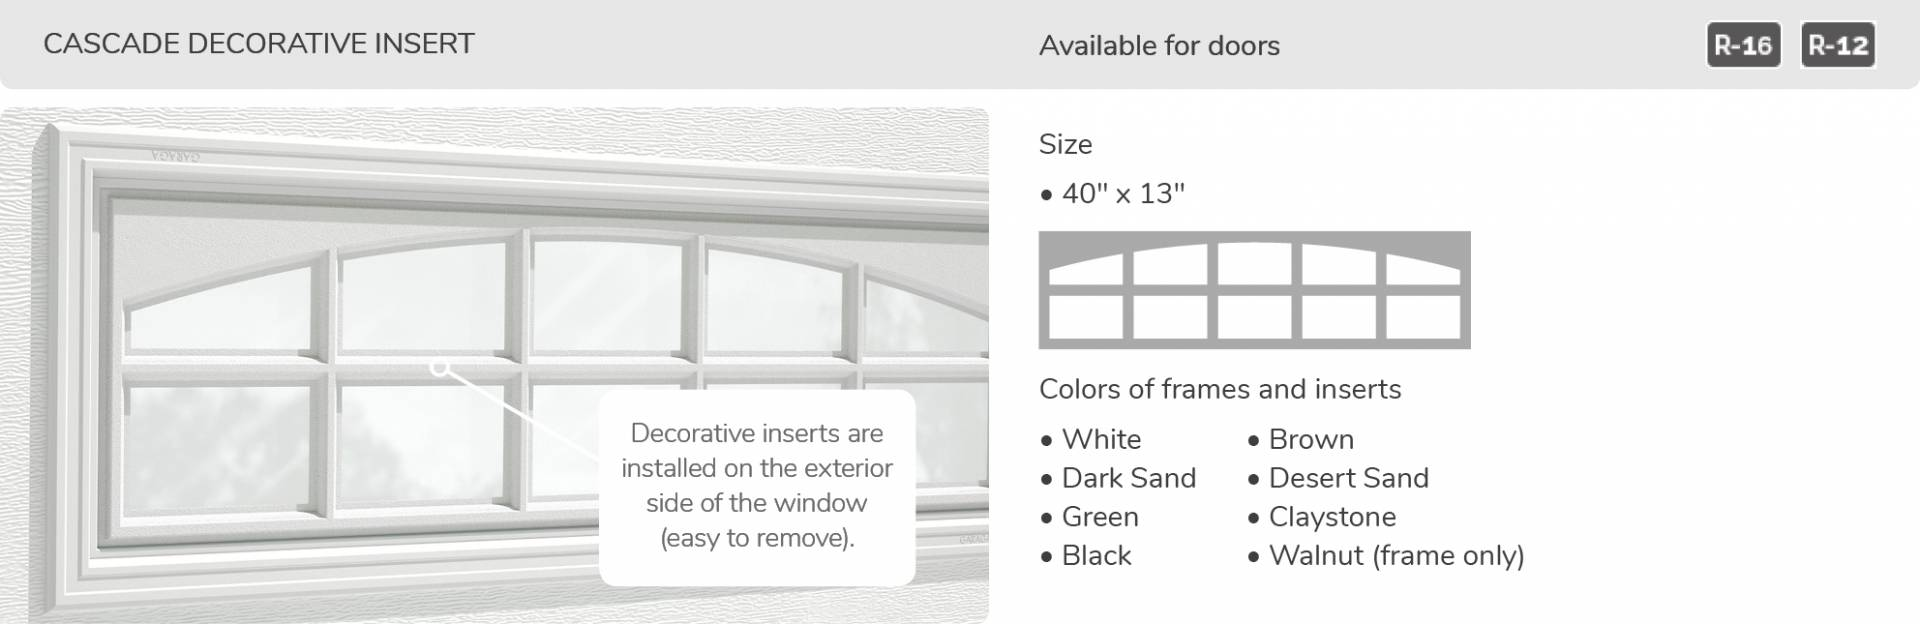 Cascade Decorative Insert, 40' x 13', available for doors R-16 and R-12